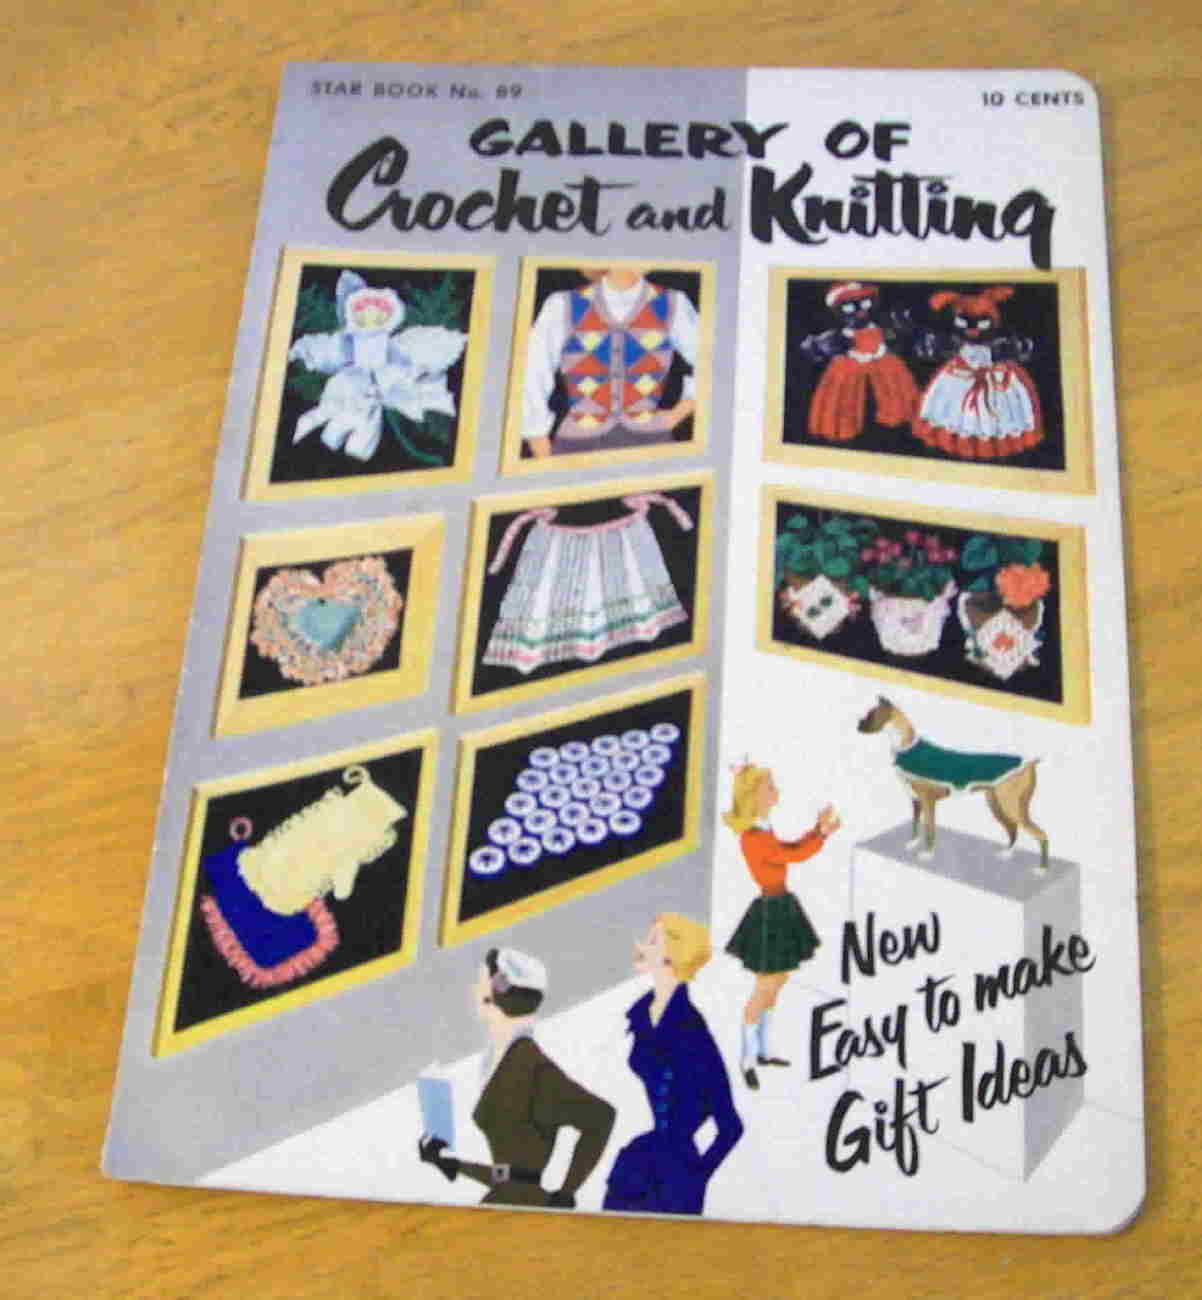 Vintage 1952 Gallery of Crochet and Knitting, Star Book